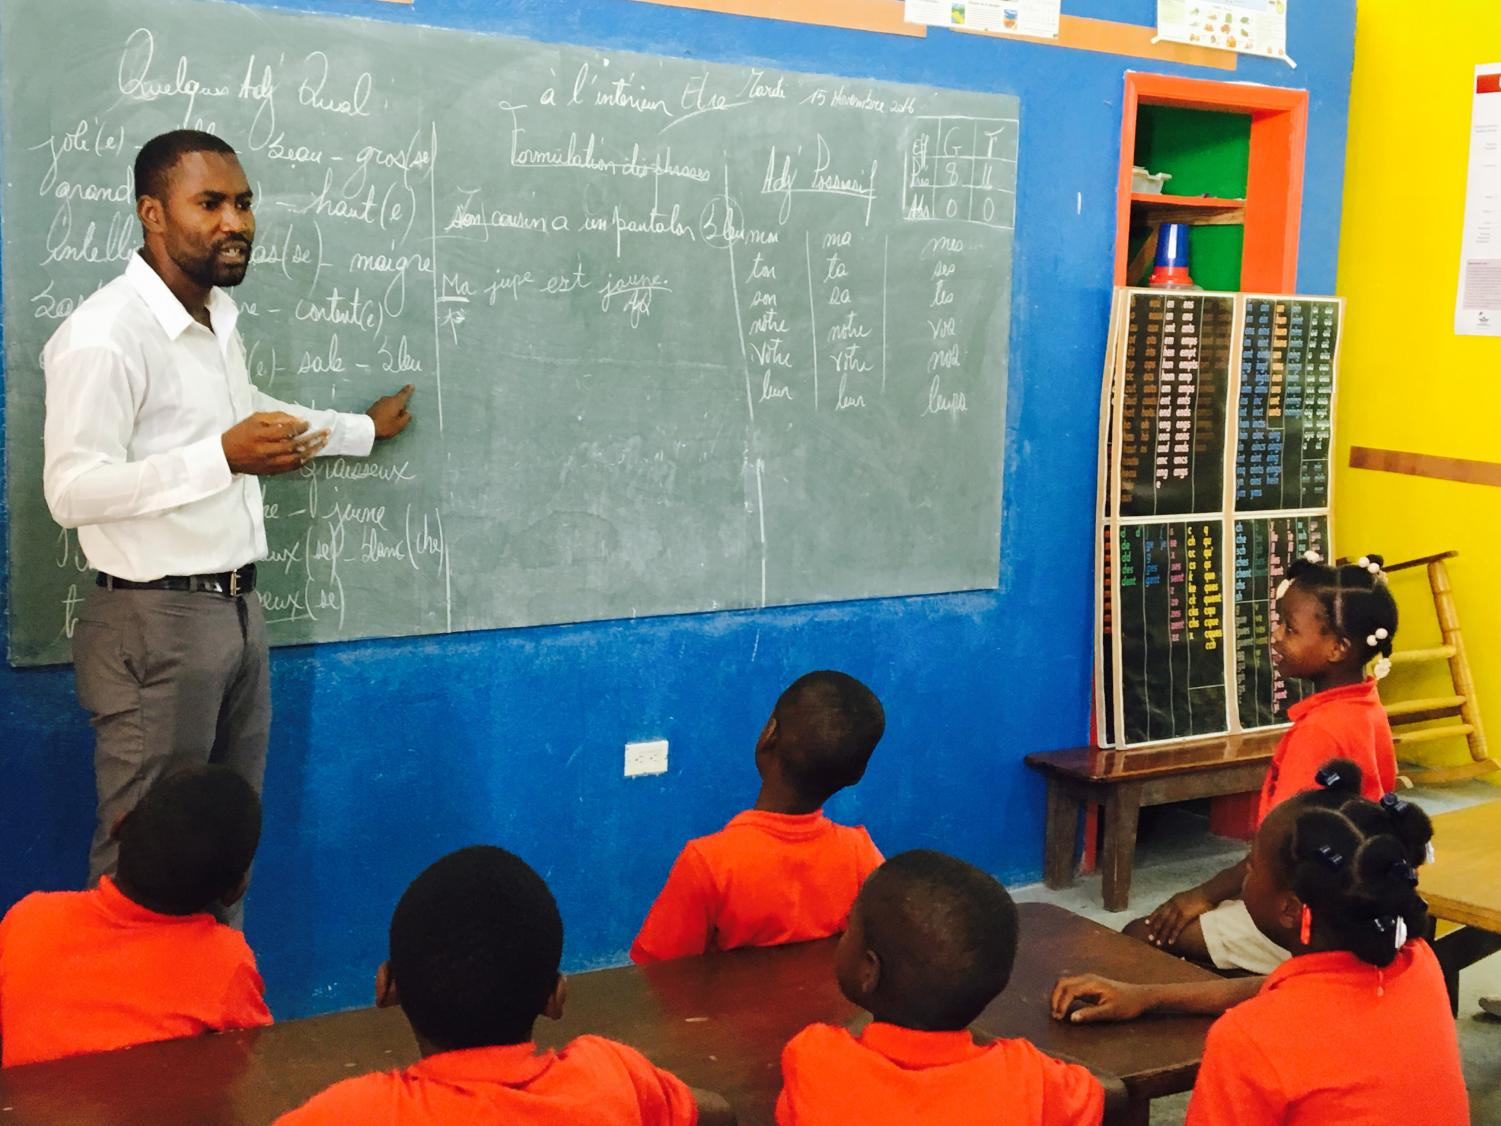 The School of Choice in Saint-Domingue serves children born into poverty through the Vincentian family's Haiti Initiative. DePaul professor Laura Hartman founded the the school in 2010. (Photo courtesy of The School of Choice)